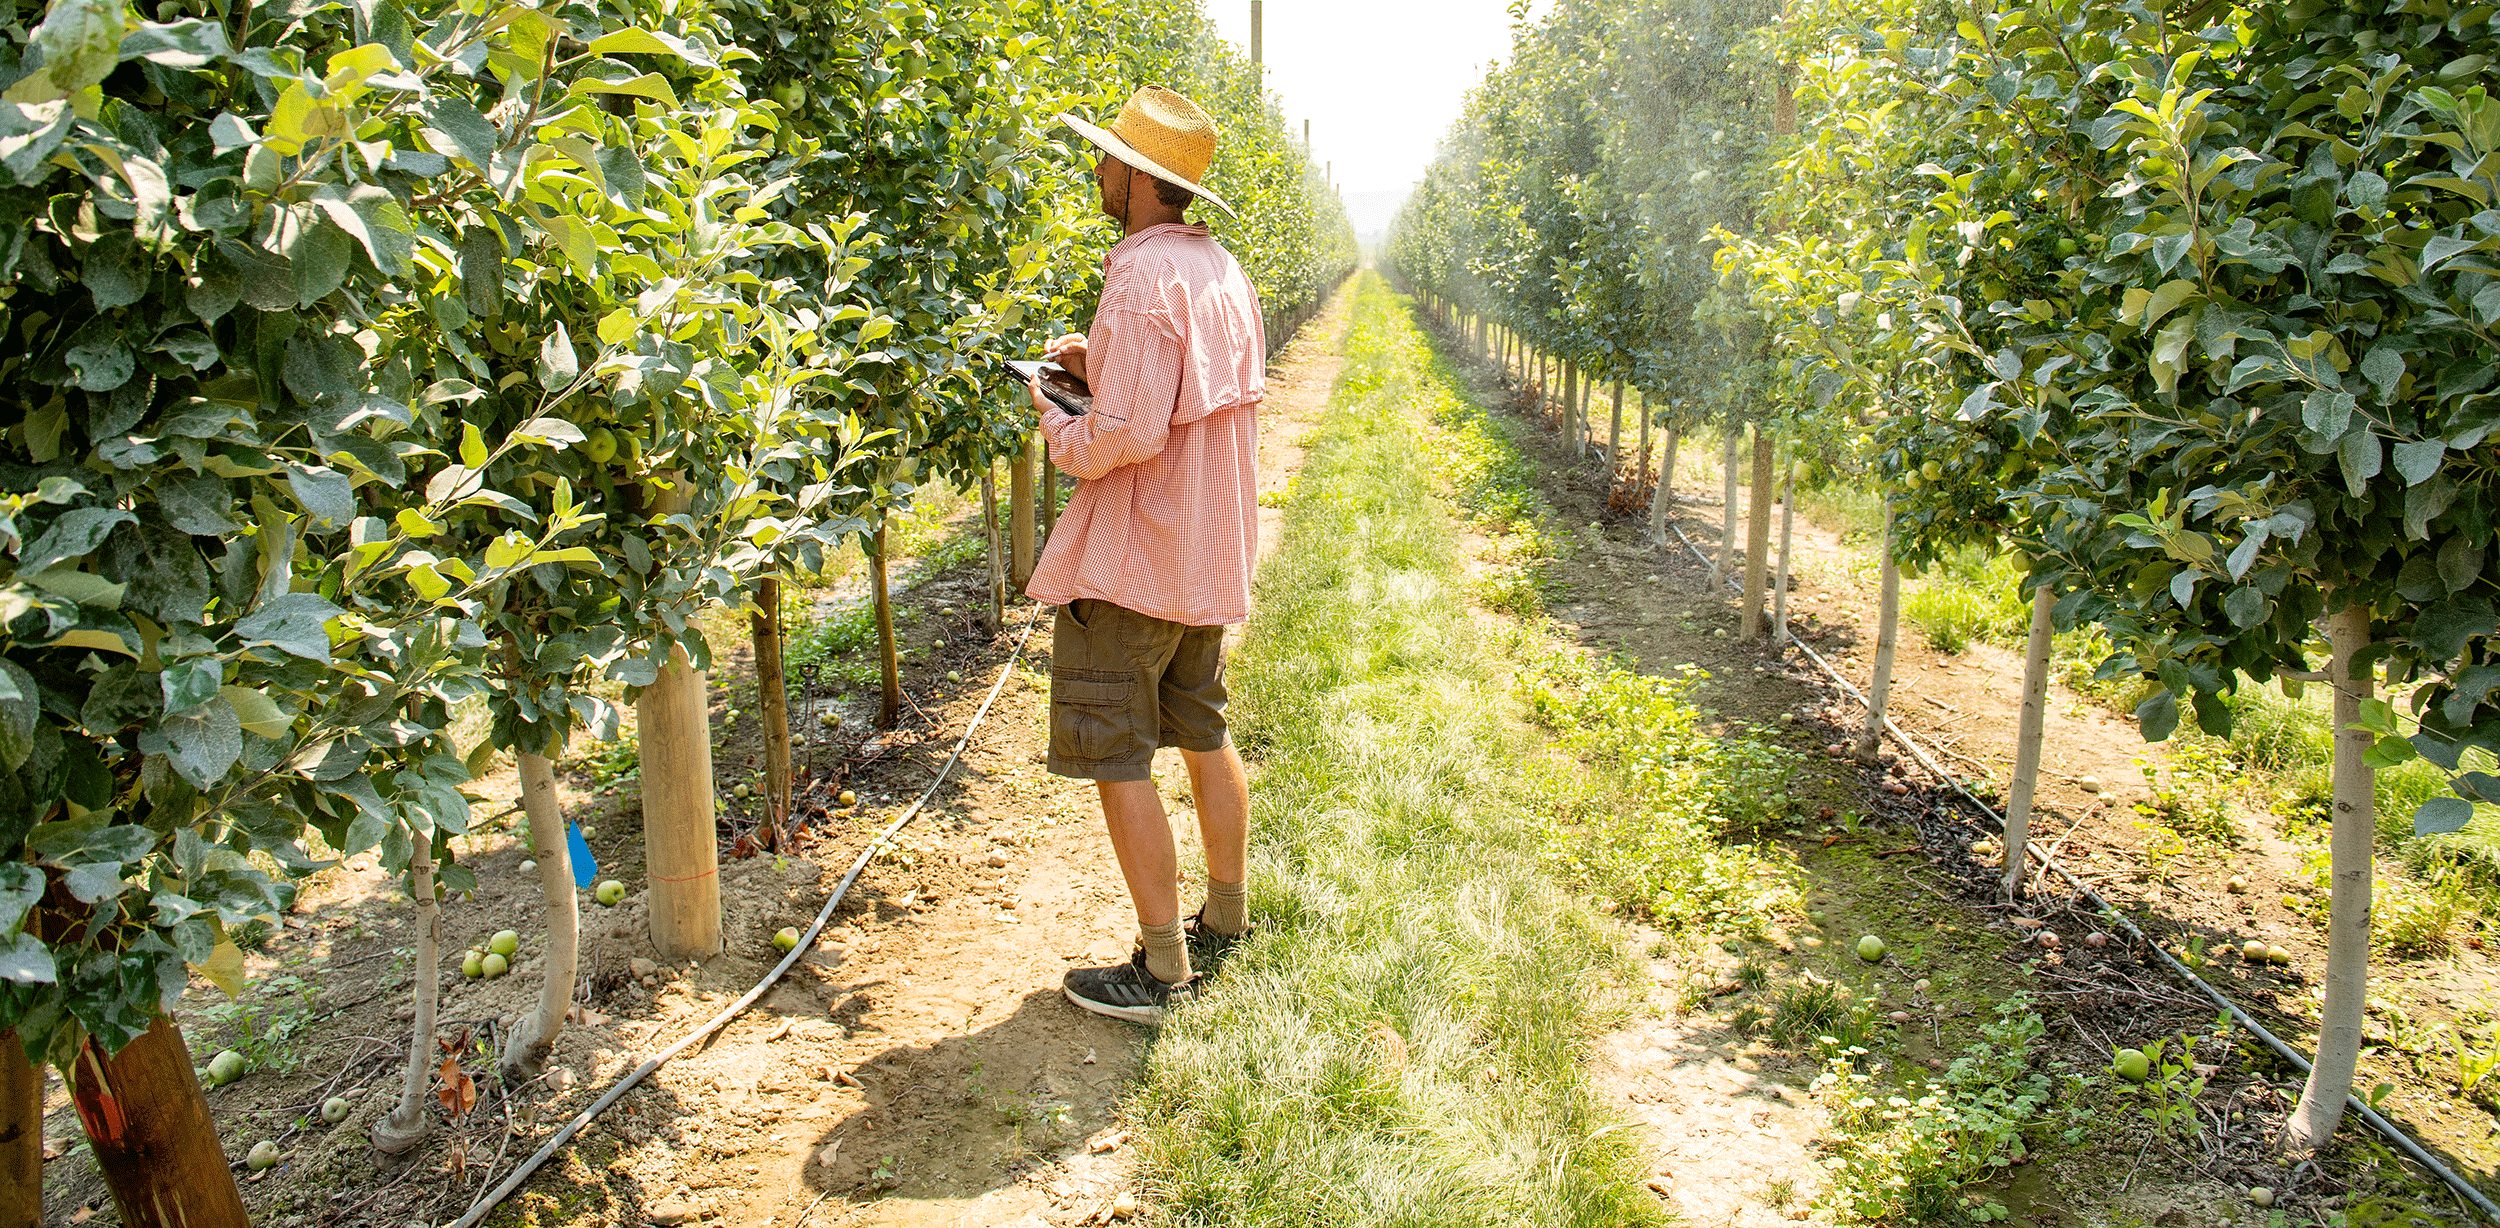 A worker inspecting produce in an orchard using a tablet.